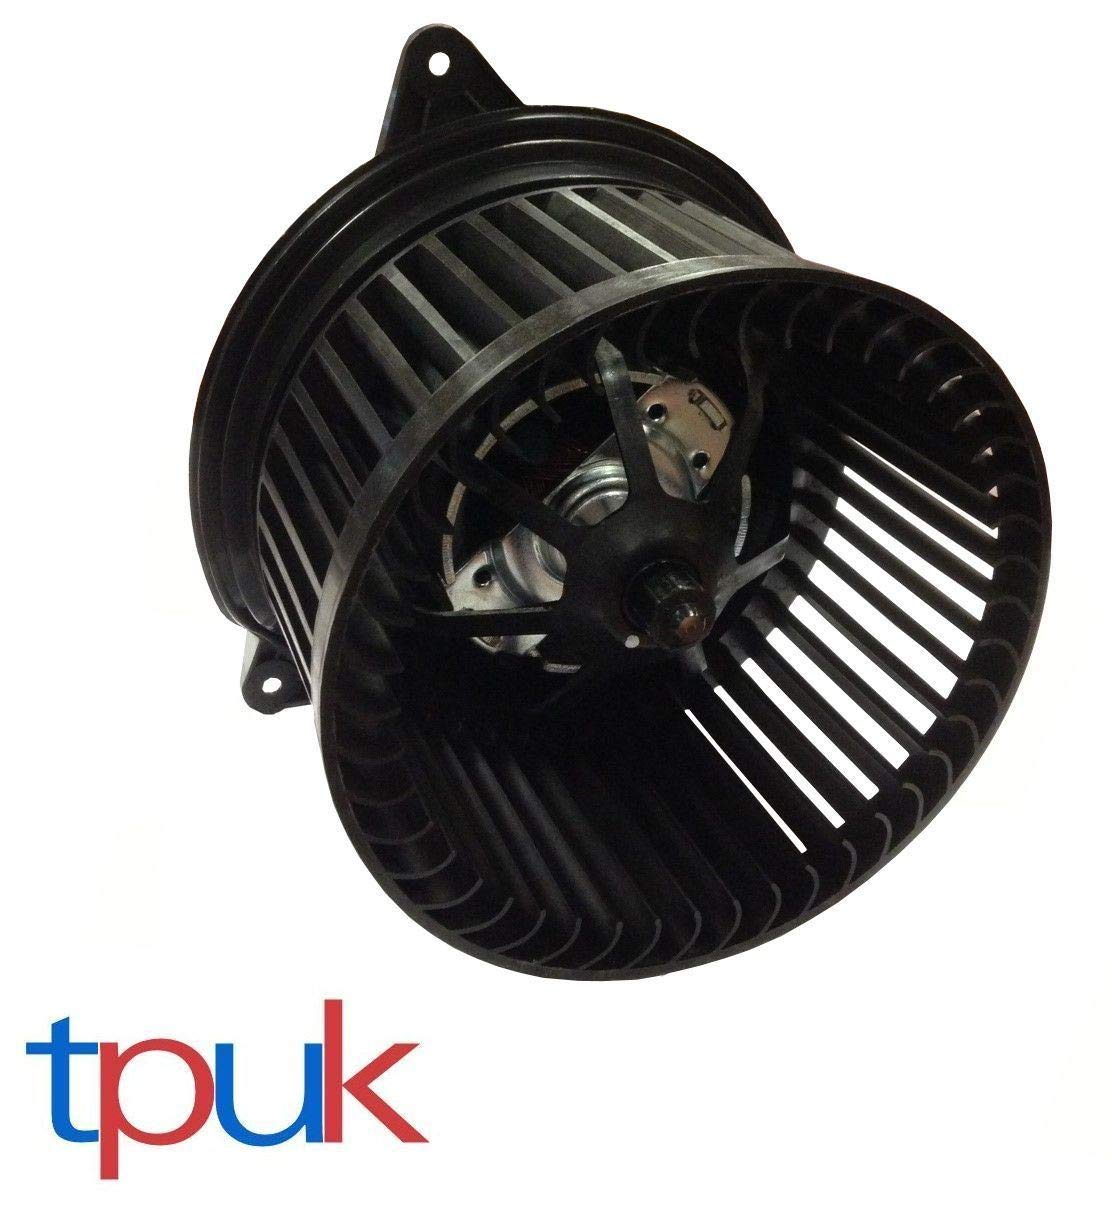 TRANSIT CONNECT FOCUS HEATER BLOWER MOTOR MONDEO X-TYPE TPUK